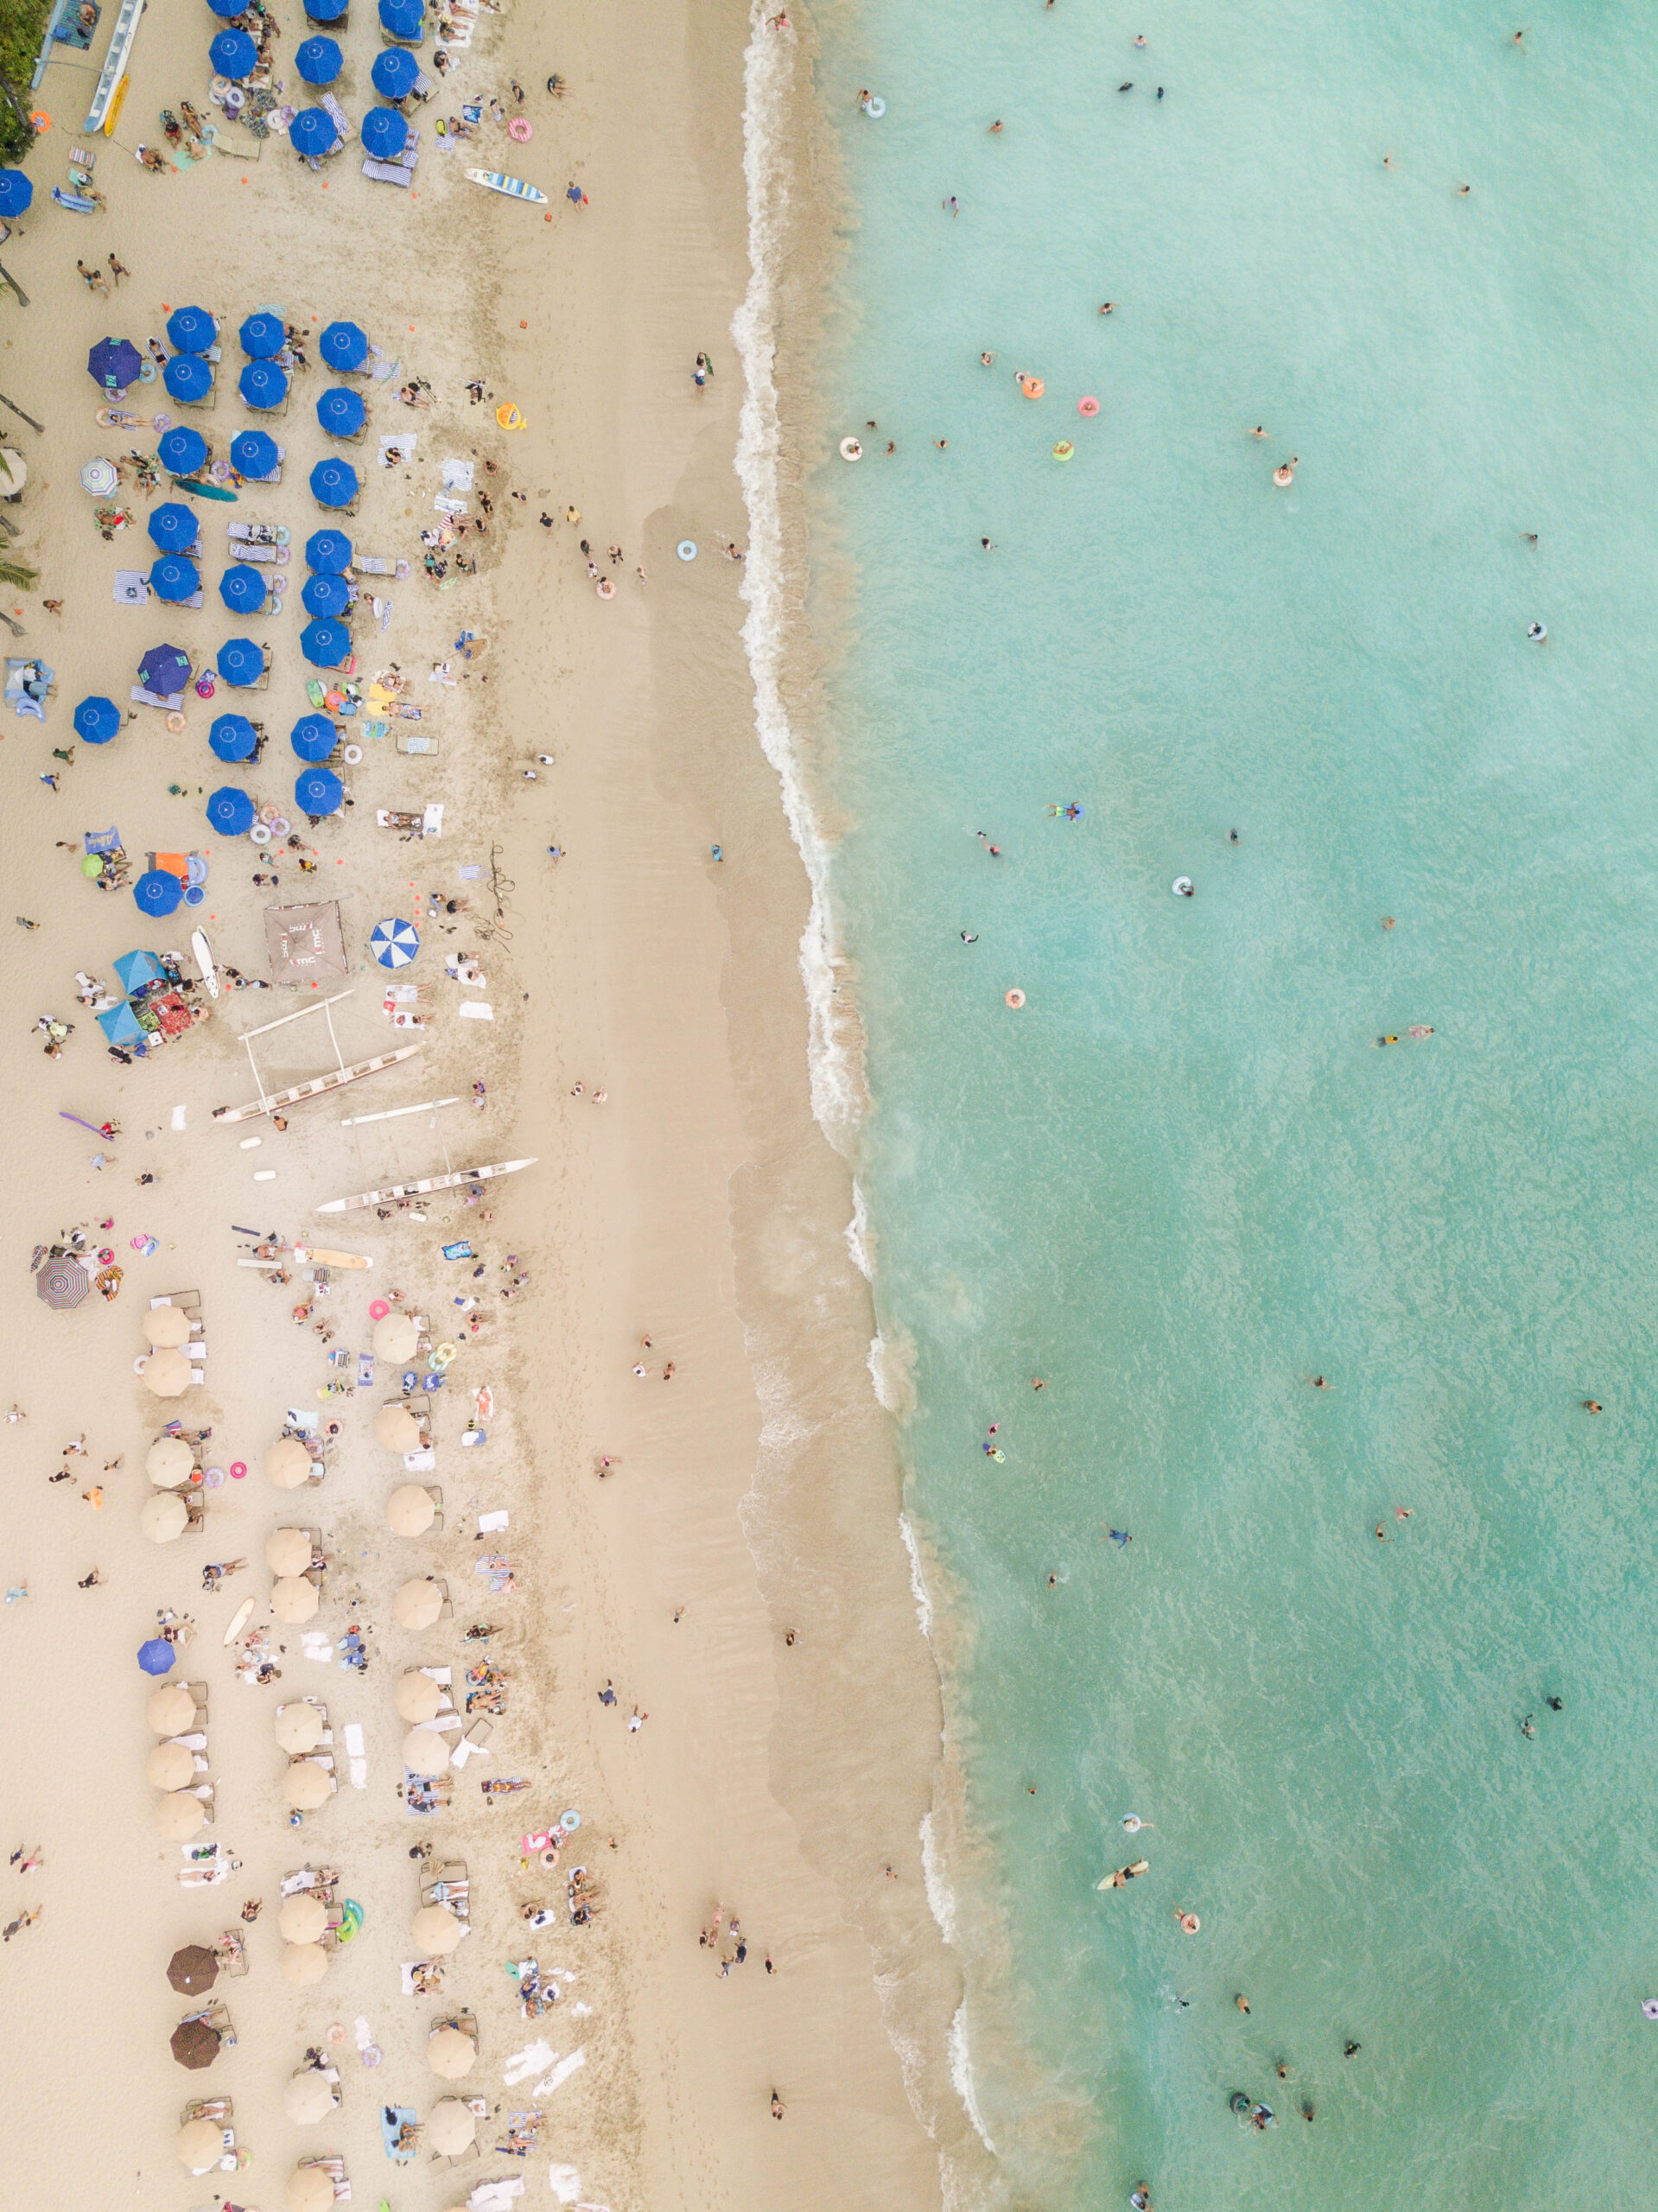 Waikiki Hawaii Photo Diary - Dreaming of Waikiki Beach on Oahu? Here are some colorful aerial Hawaii photos for an instant tropical vacation!   Waikiki Beach Oahu   Outrigger Waikiki Beach Resort   Aston Waikiki Beach Hotel   Waikiki Beach Honolulu   Hawaii Photos   Aerial Photography